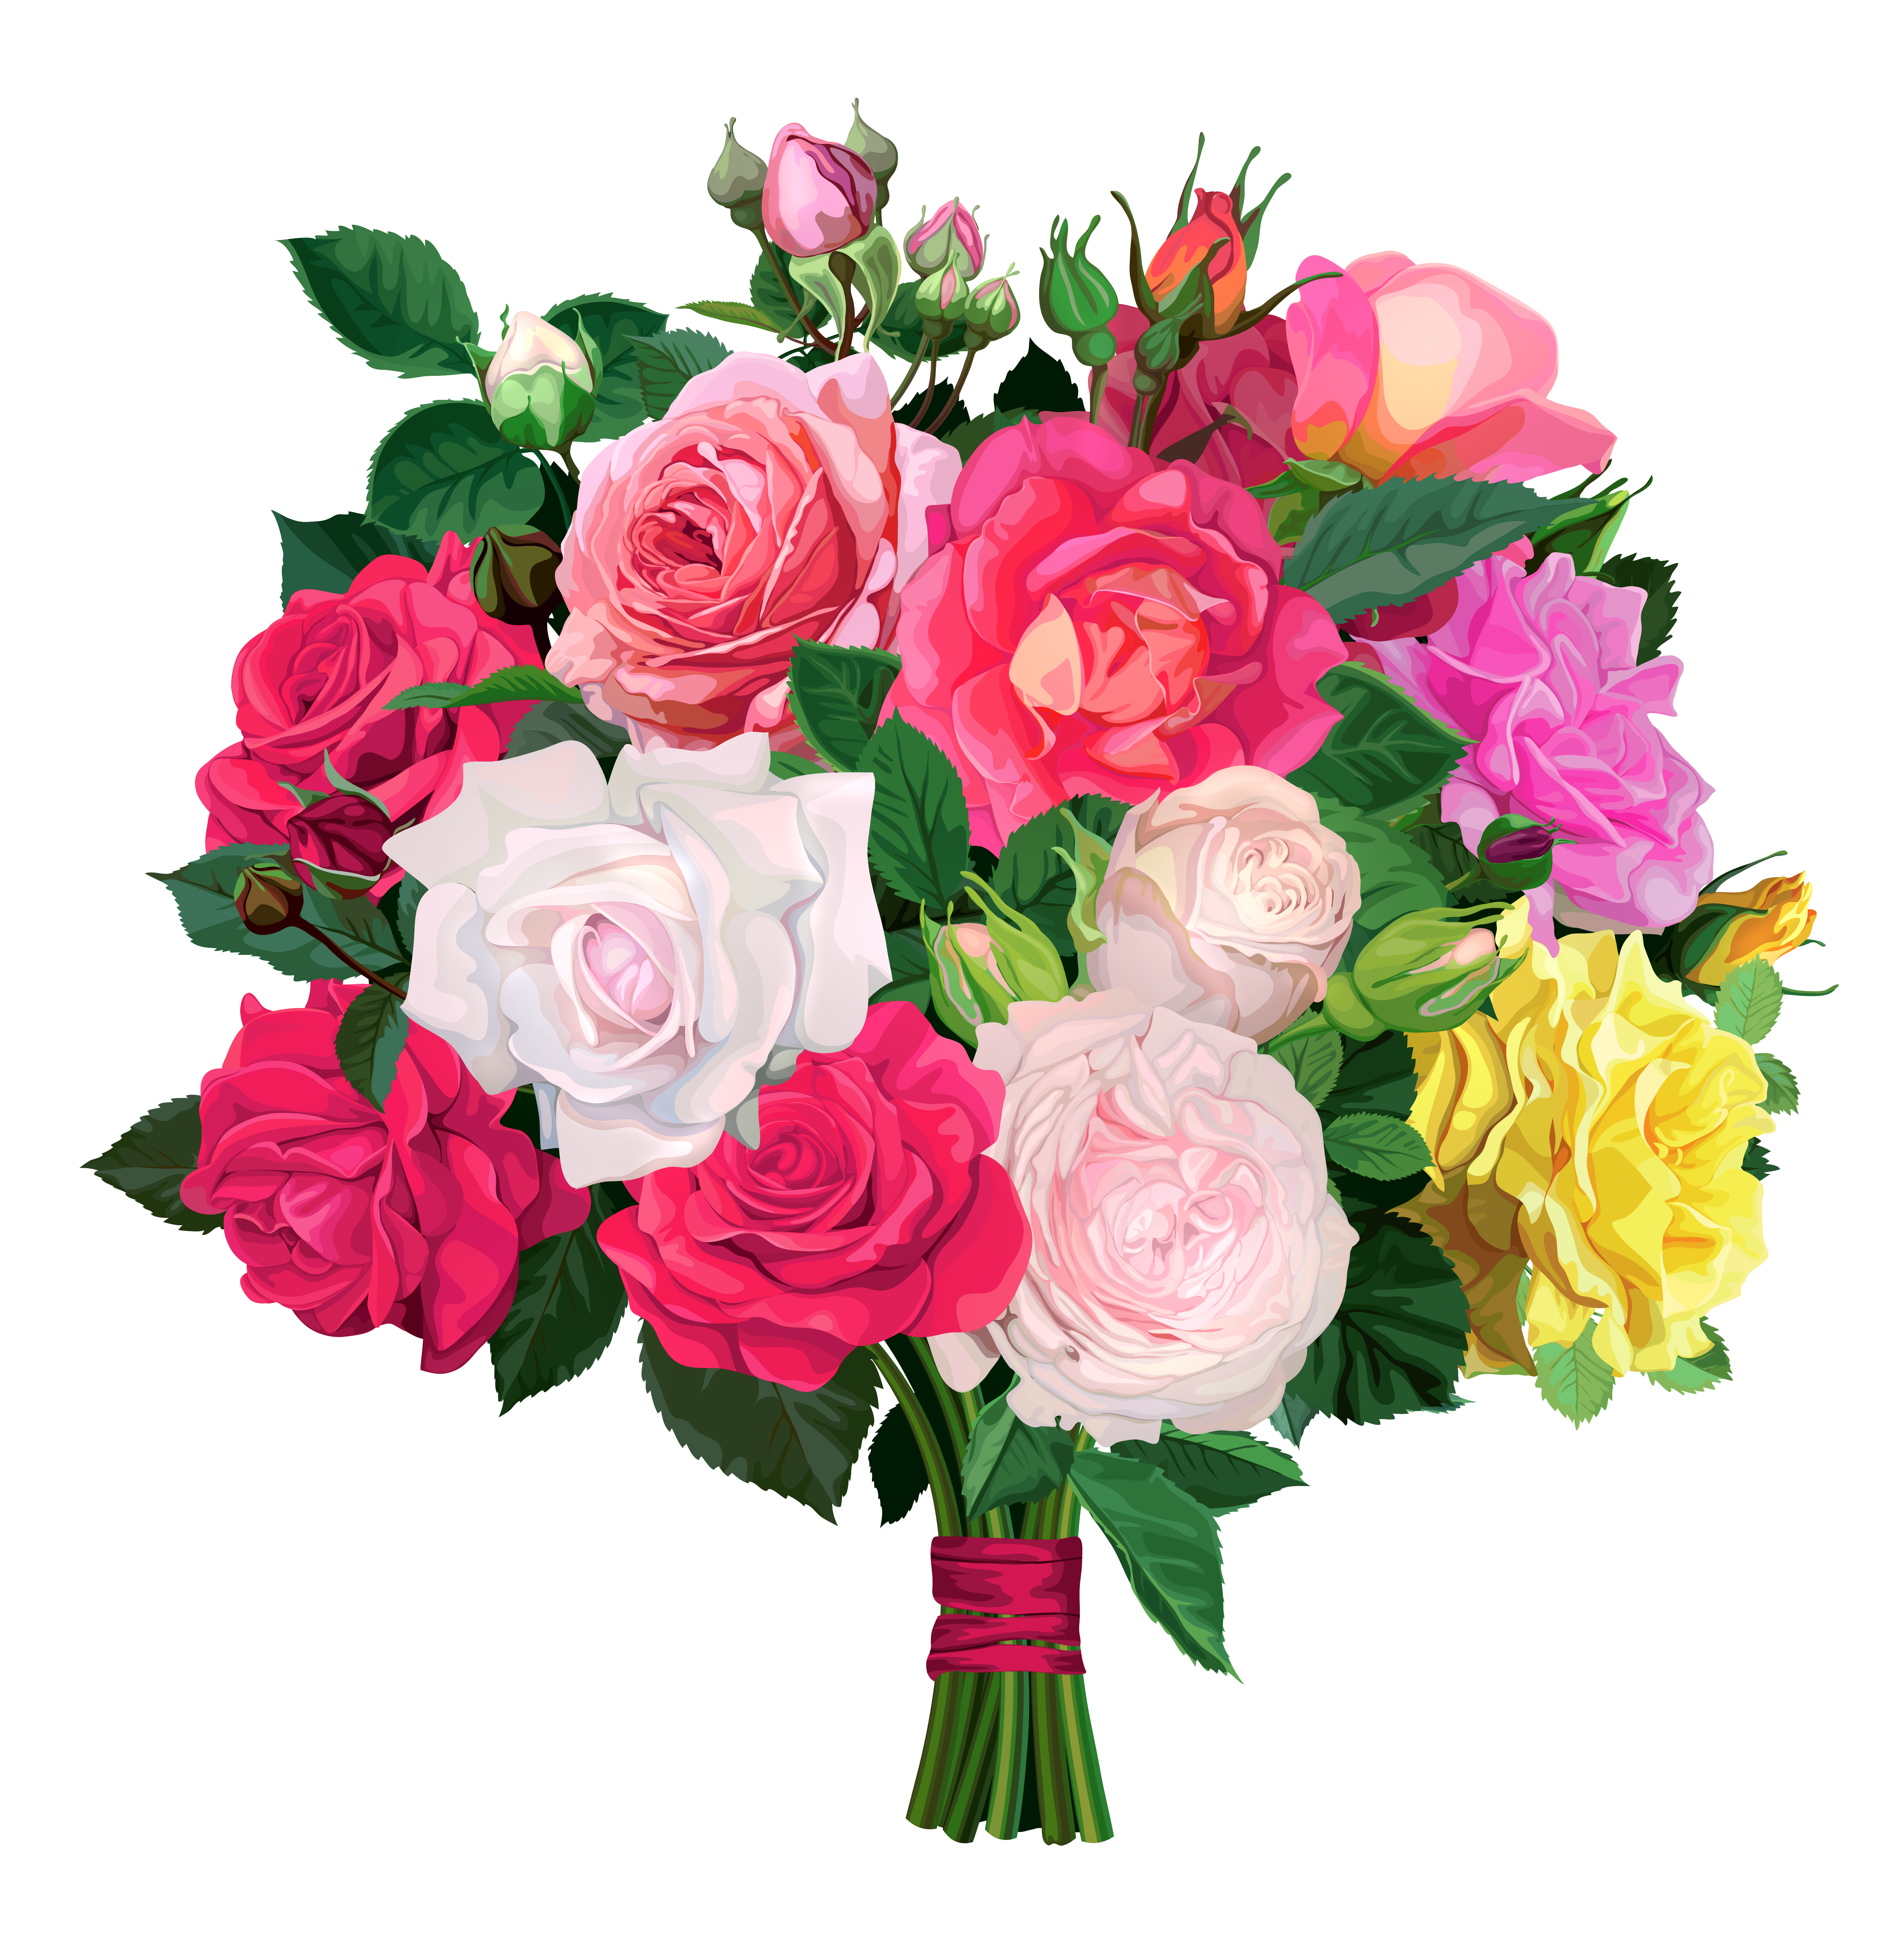 Flower bouquet clipart no background.